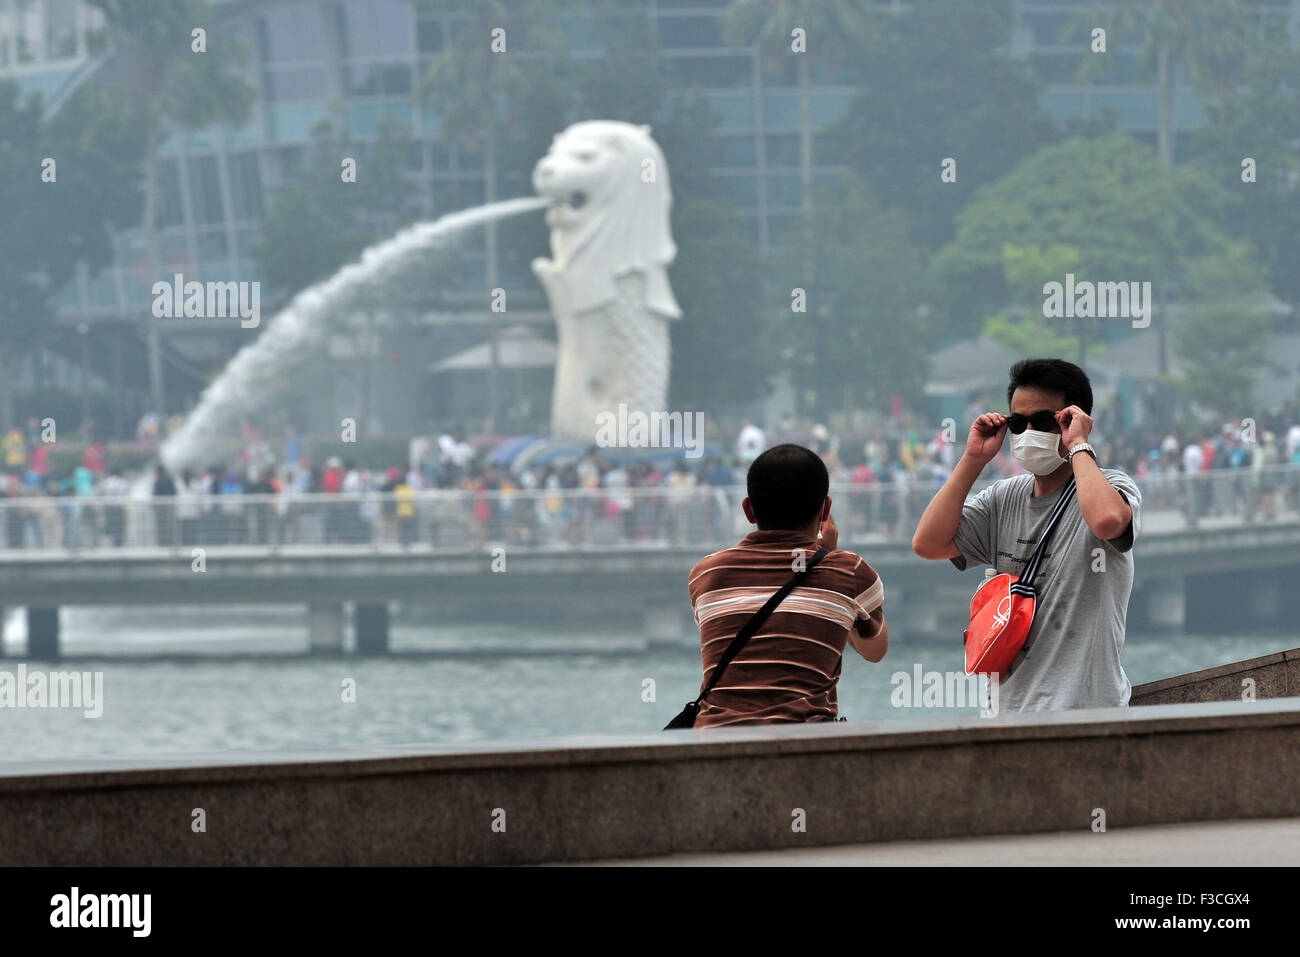 Singapore. 5th Oct, 2015. Tourists wearing masks take photos at Singapore's Marina Bay area on Oct. 5, 2015. - Stock Image